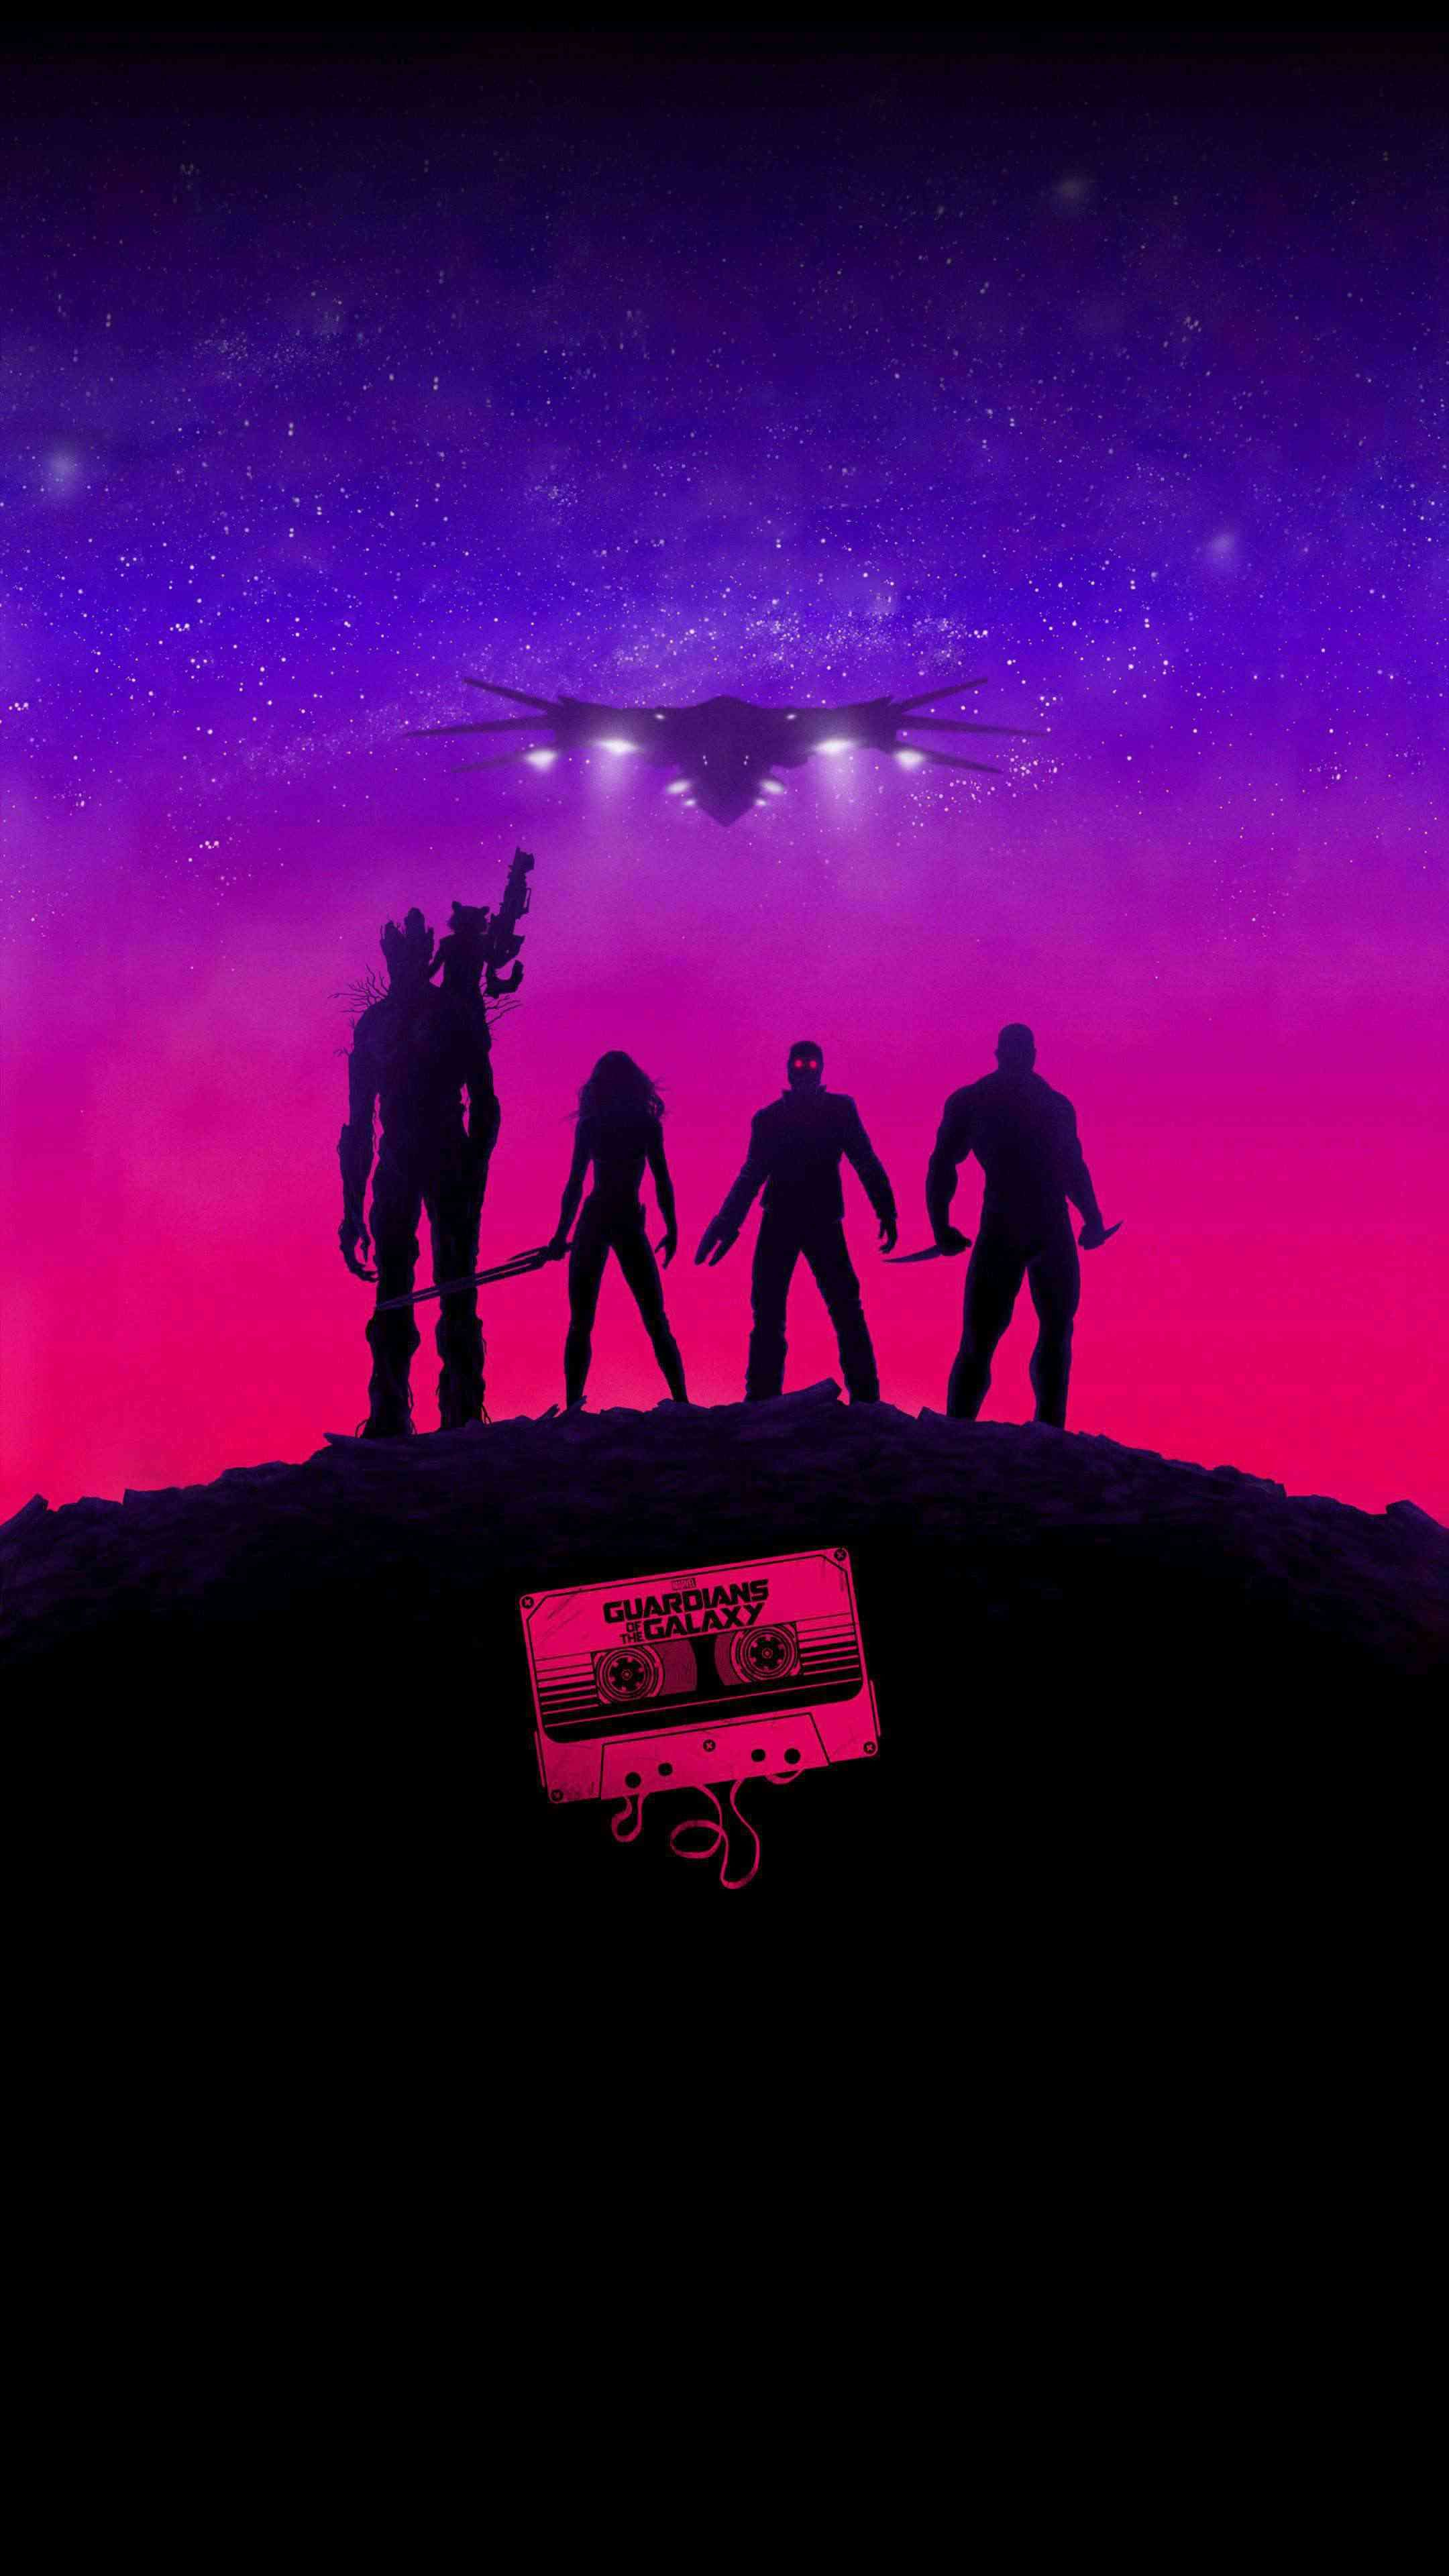 Guardians Of The Galaxy Hd Iphone Wallpaper Marvel